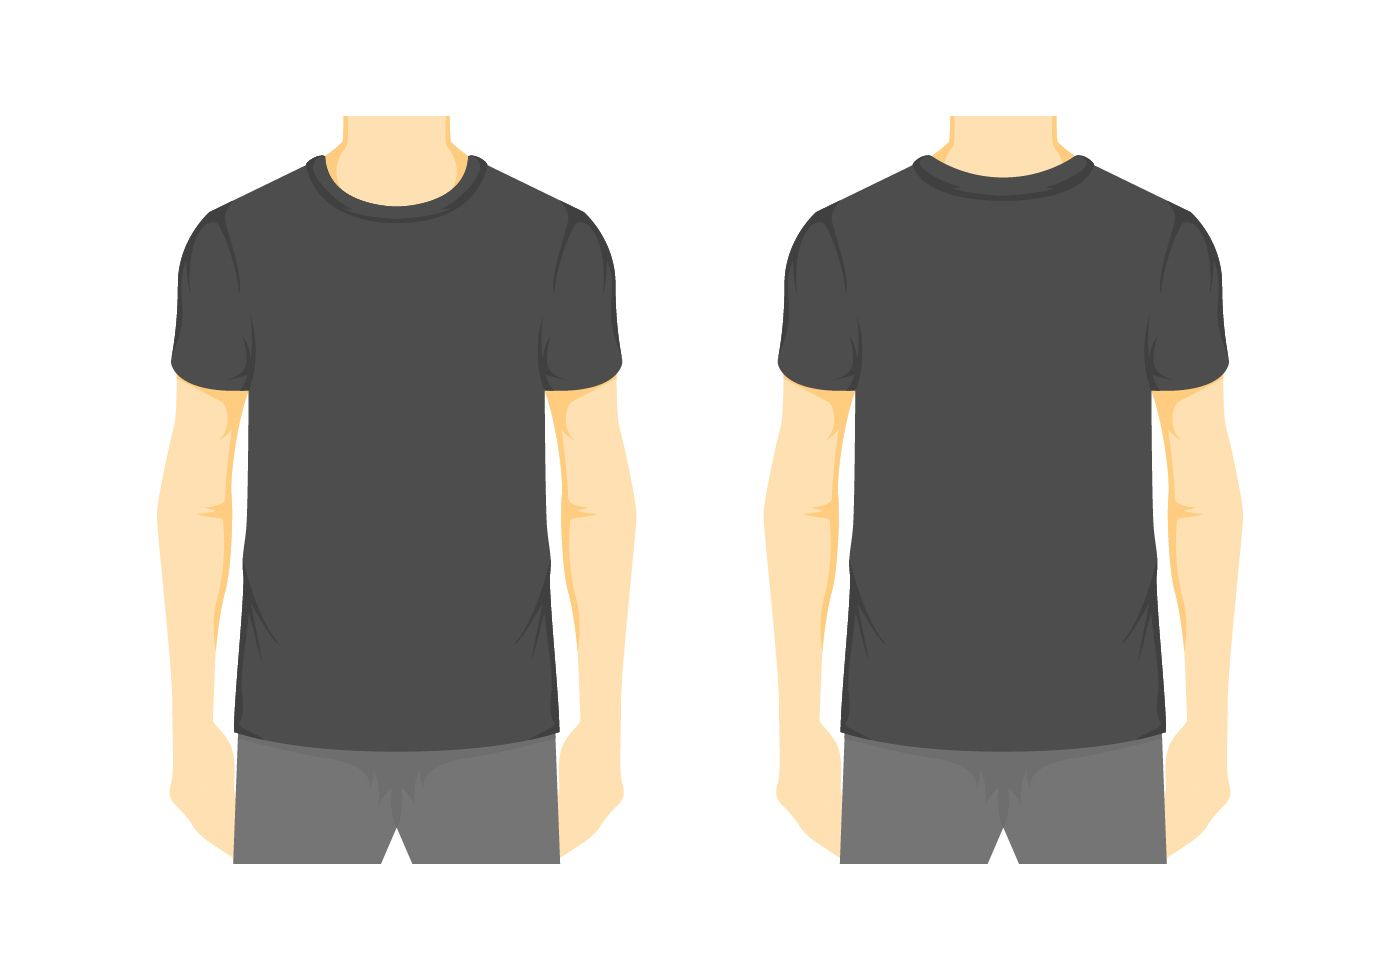 Vector Blank T Shirt Template 2 Download Free Vectors Pertaining To Blank Tee Shirt Template Blank T Shirts Shirt Template Shirts